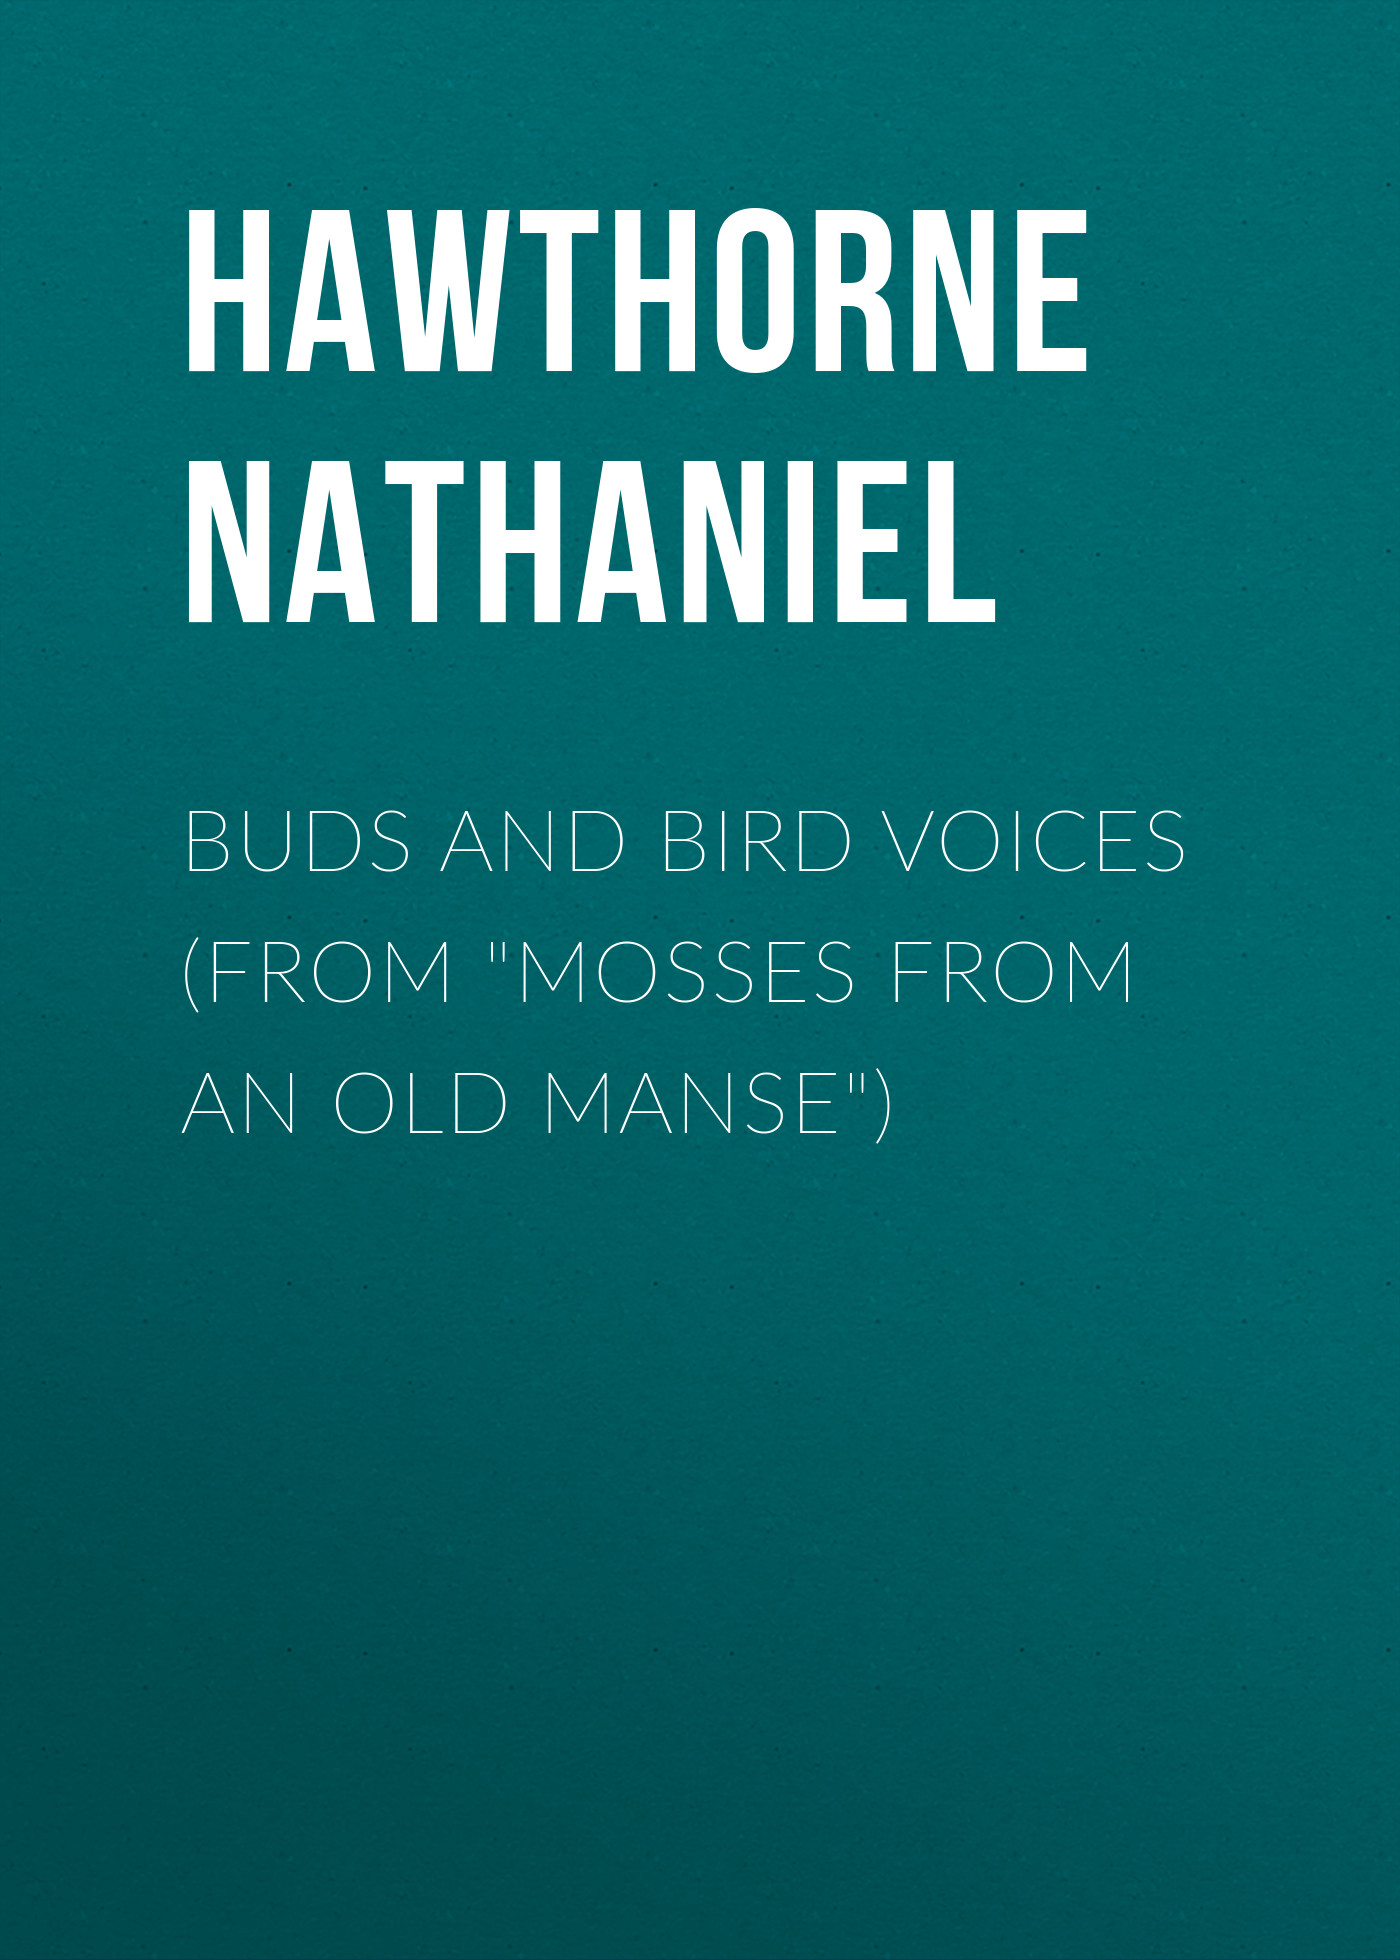 Hawthorne Nathaniel Buds and Bird Voices (From Mosses from an Old Manse) hawthorne nathaniel the hall of fantasy from mosses from an old manse